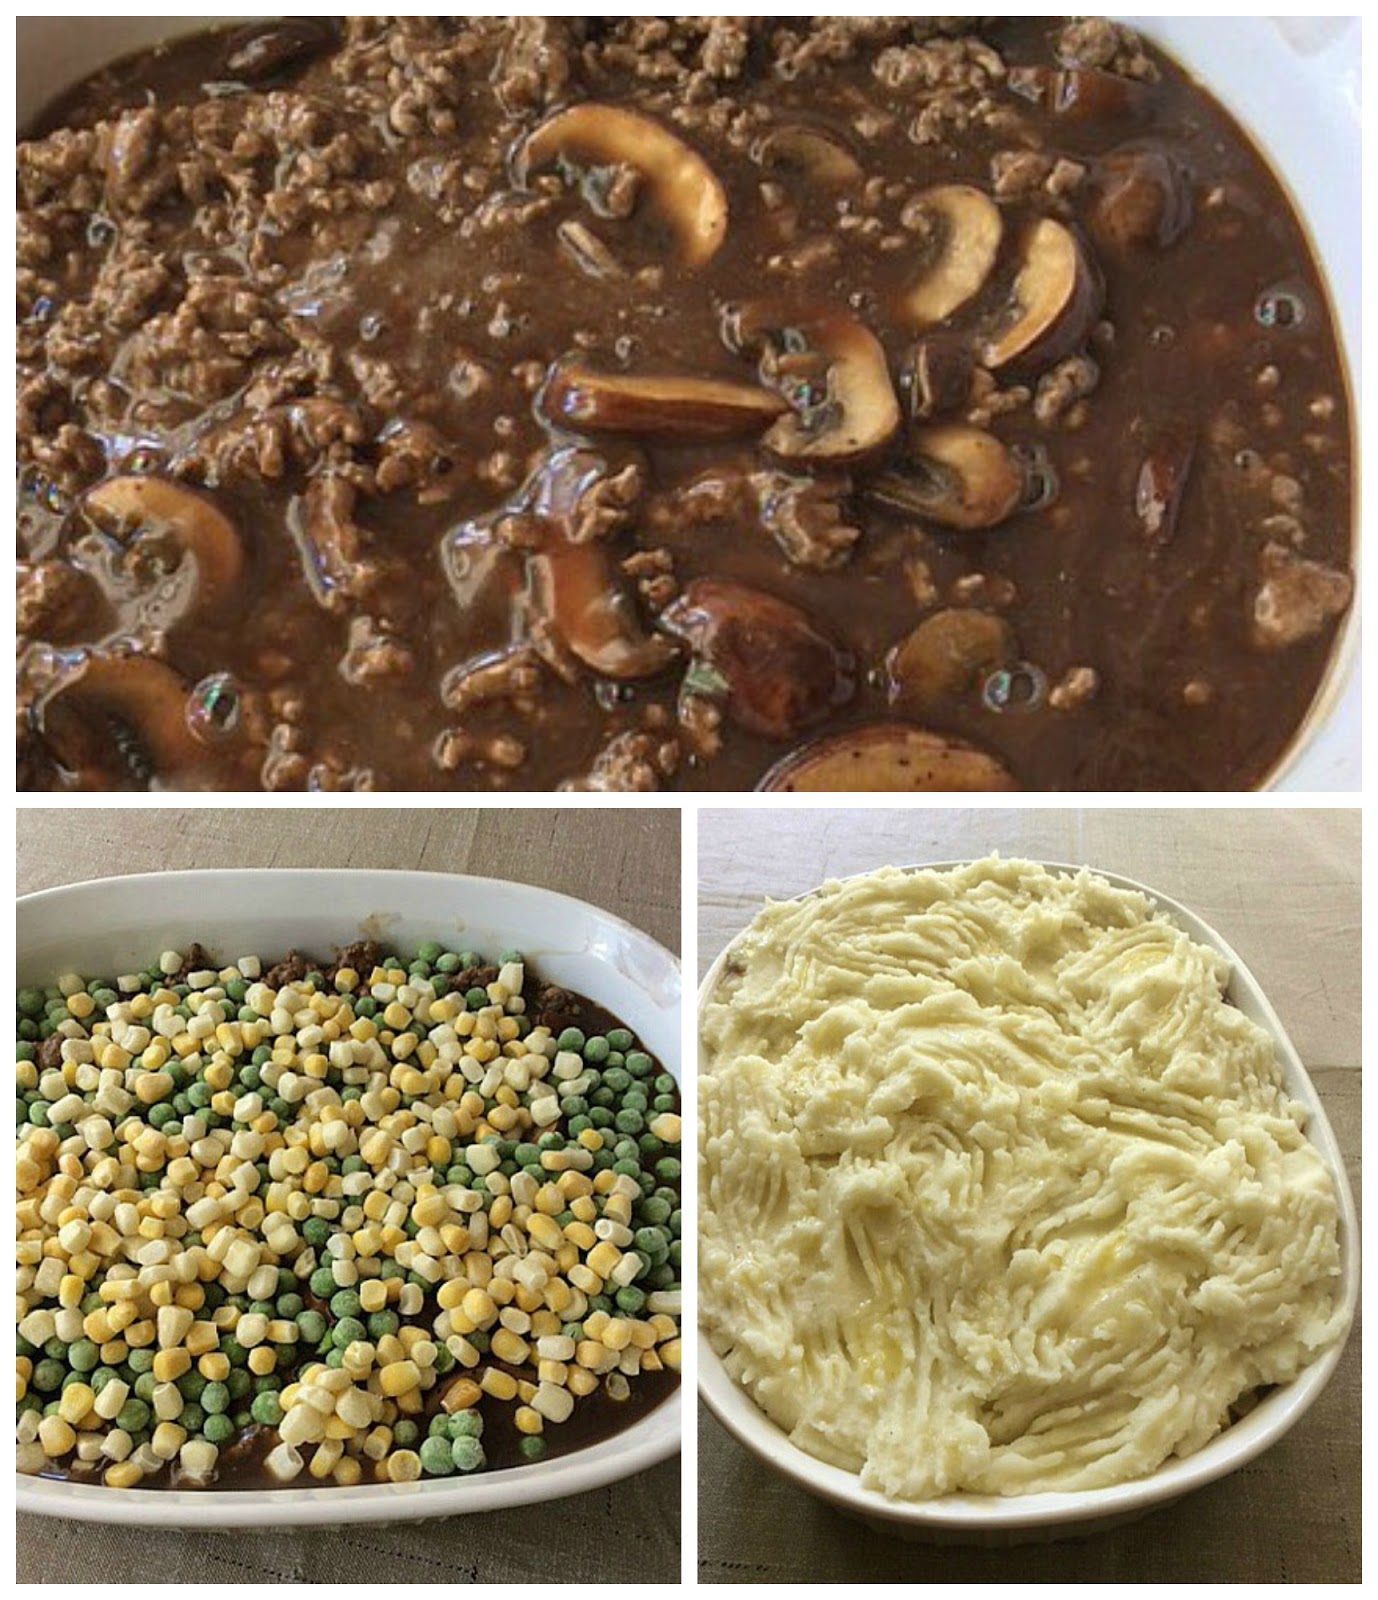 ... : Beef & Mushroom with Sour Cream Mashed Potato Shepherd's Casserole